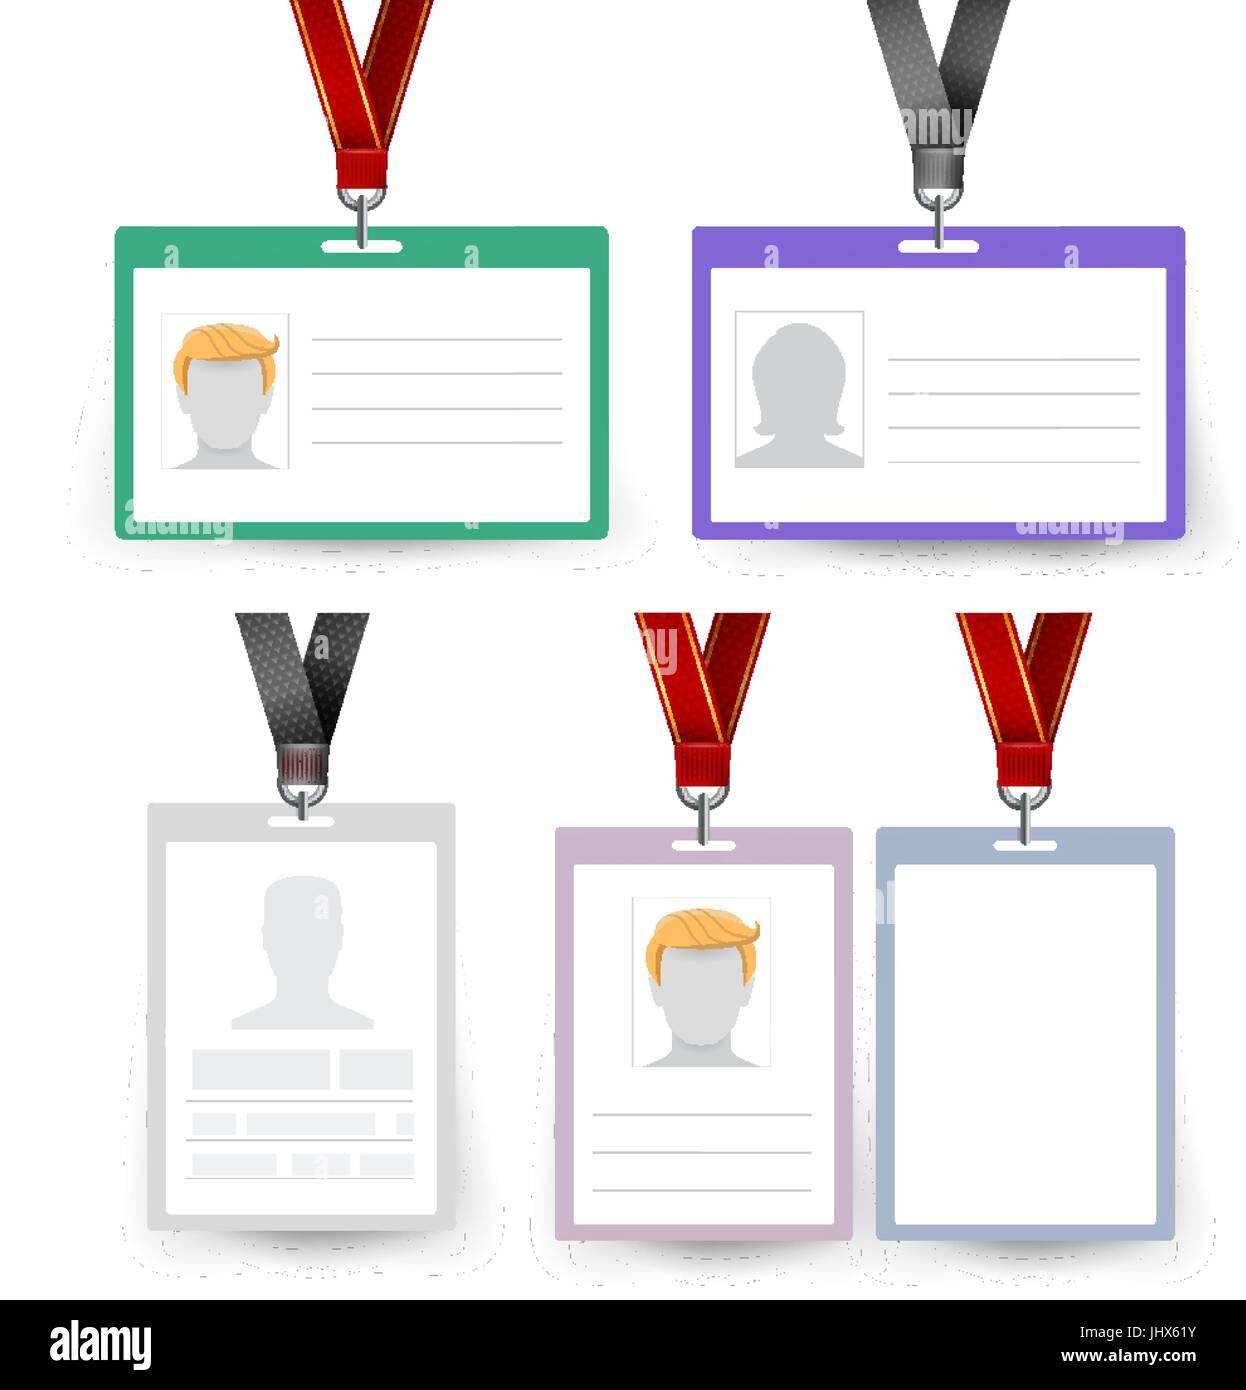 Id Badge Set Vector Name Tag Employee Card White Blank Plastic Id Stock Vector Image Art Alamy